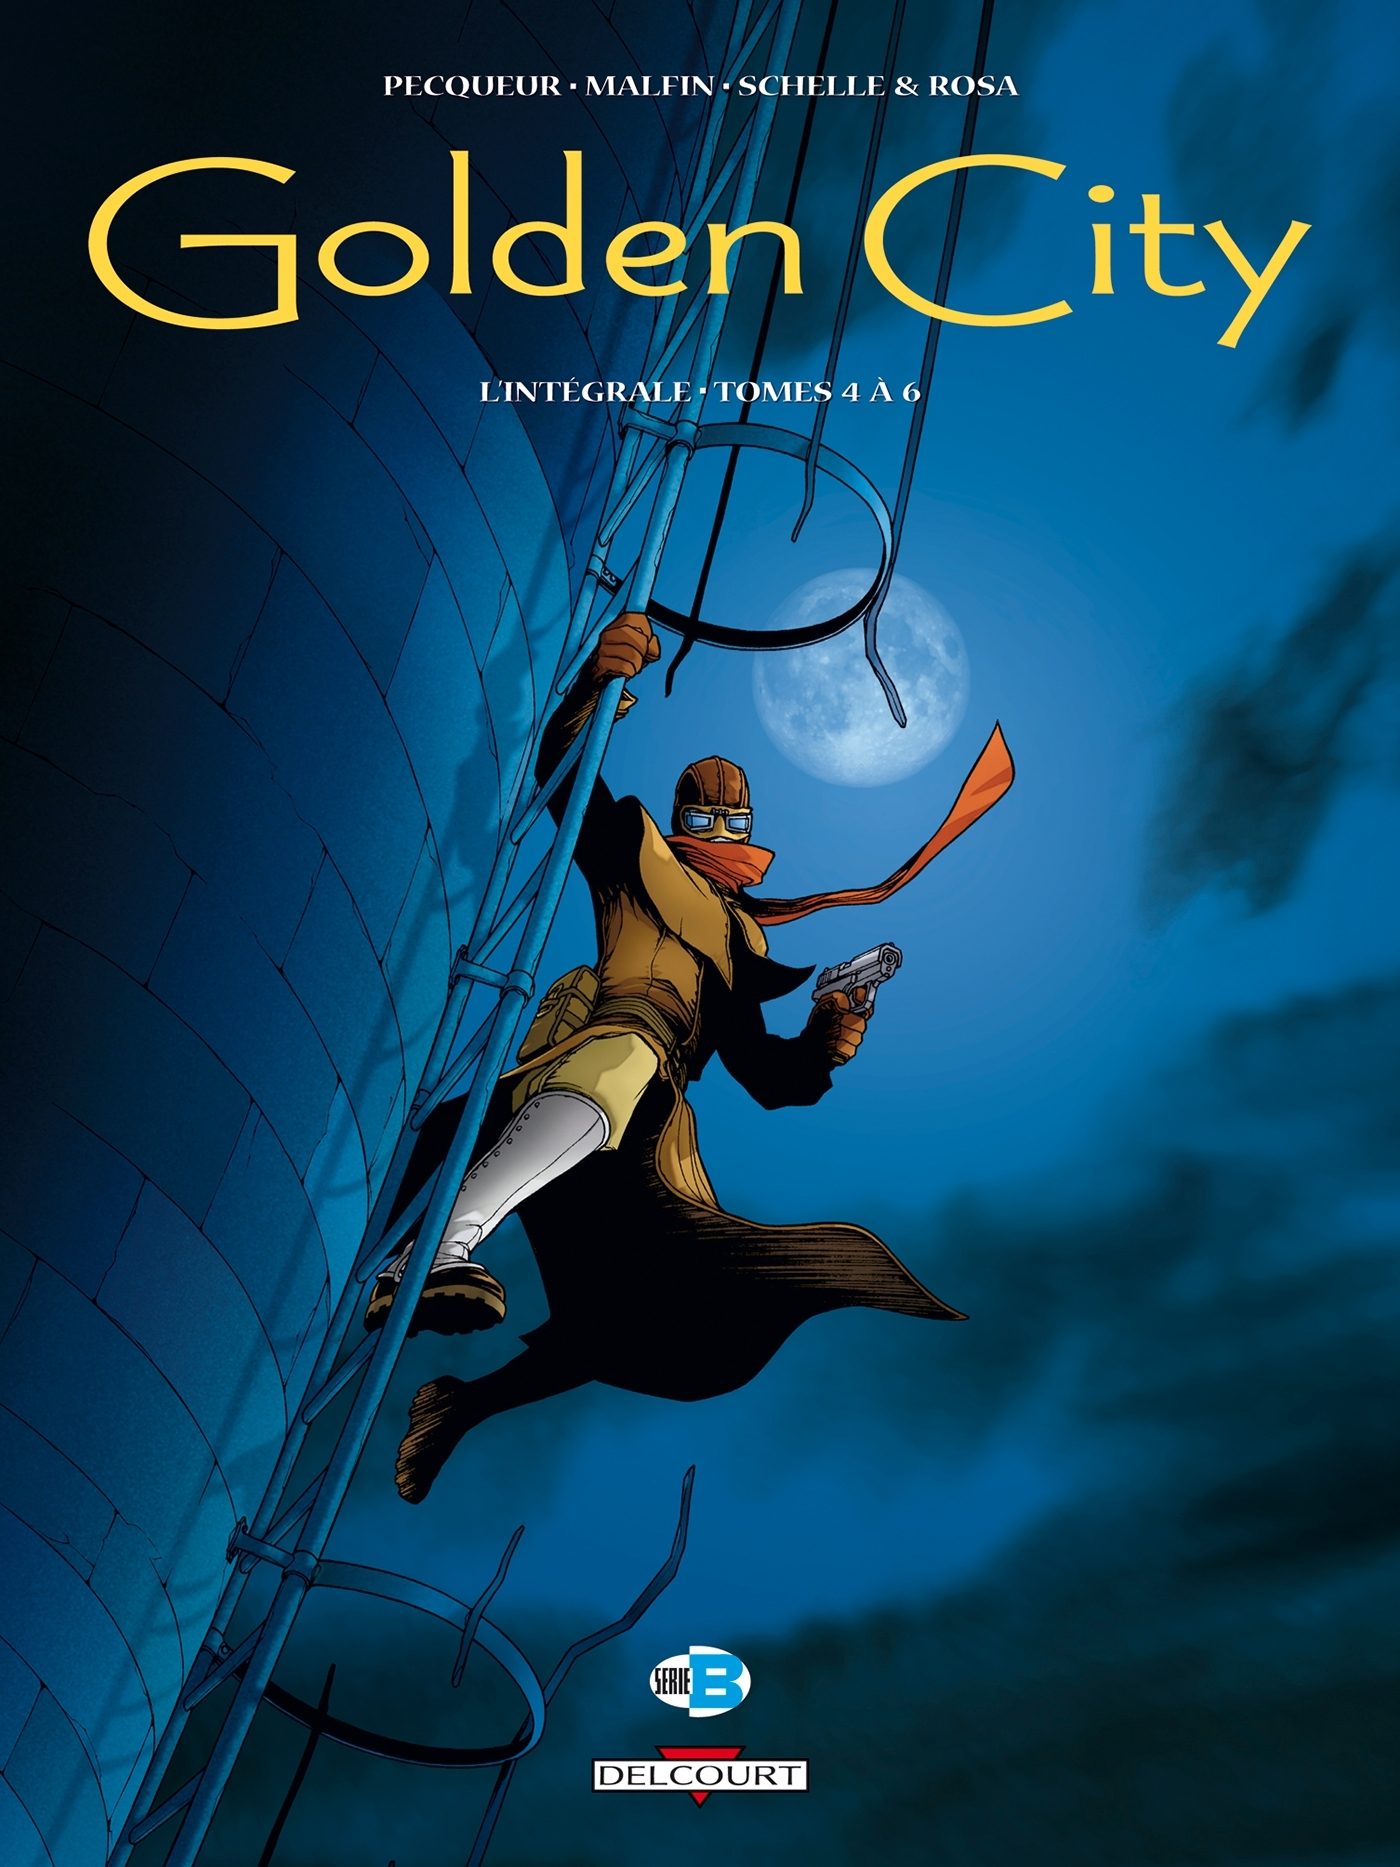 GOLDEN CITY - INTEGRALE (T04 A T06)